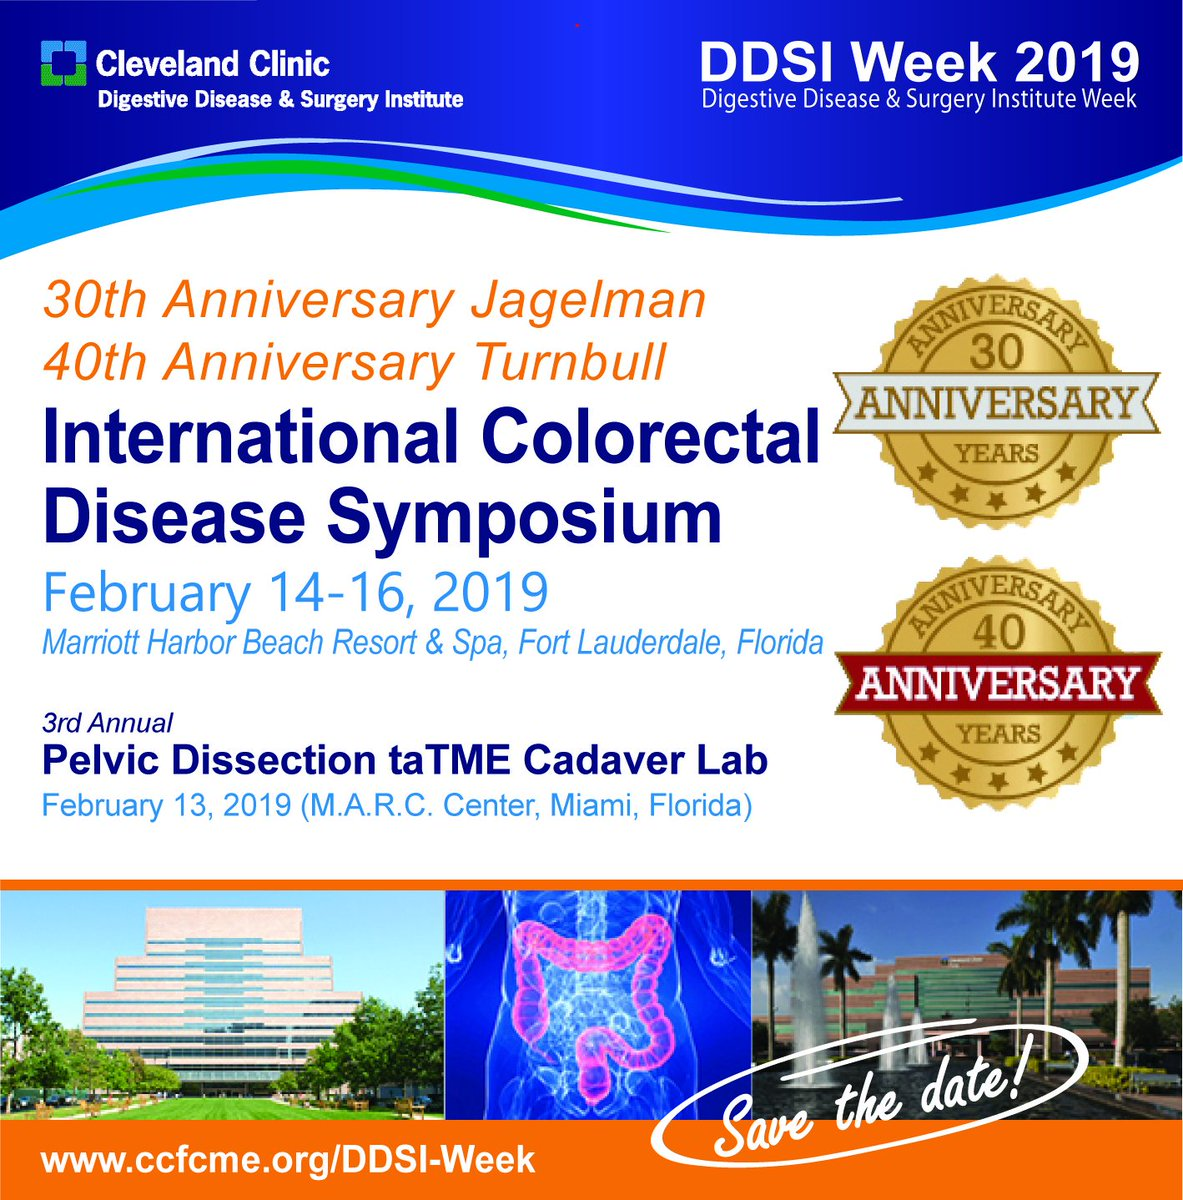 It&#39;s our Anniversary!  Save the date!  February 13-16, 2019.  Join us as we celebrate our alumni!   http://www. ccfcme.org/DDSI-Week  &nbsp;   #DDSIWeek19 #DDSIWeek #CCFCRS19 @SWexner @ScottRSteeleMD @ConorDelaneyMD @EAES_eu @SAGES_Updates @fascrs_updates @escp_tweets @taTMEsurgery<br>http://pic.twitter.com/zsJMOgrrDD